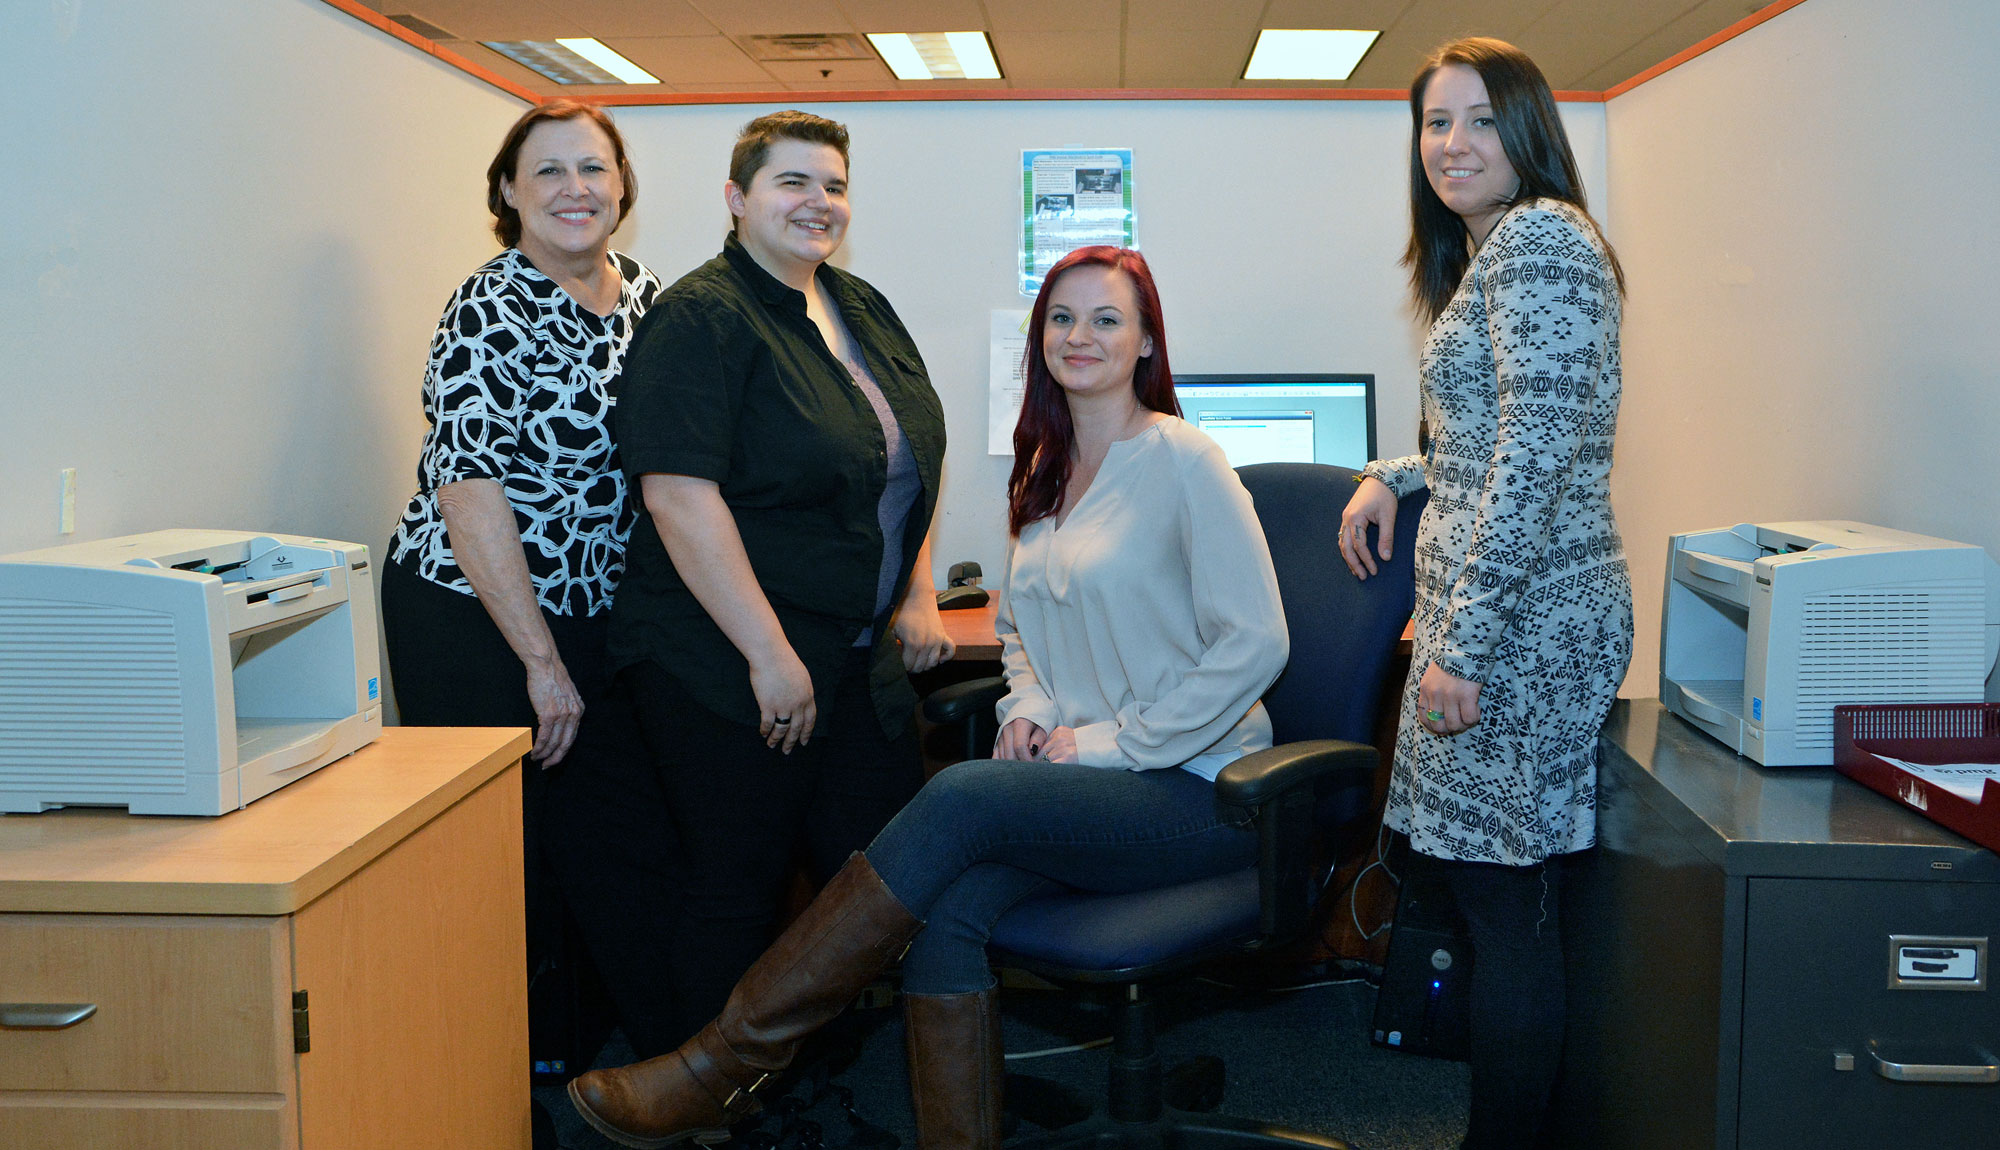 Four MTTI 2015 Medical Billing and Coding Graduates, who work at PMG, pose for a picture.